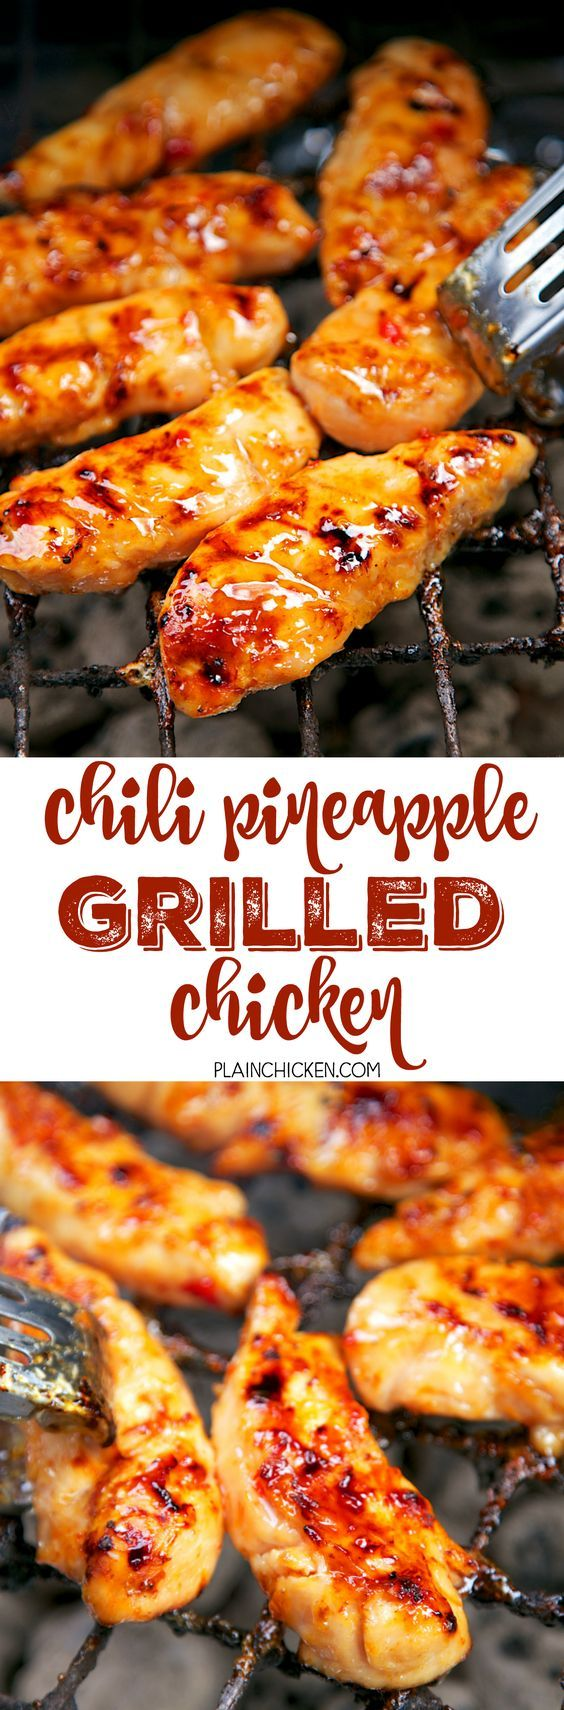 Chili Pineapple Grilled Chicken - only simple 4 ingredients! Chicken, chili sauce, pineapple juice and honey. TONS of great flavor!! We ate this chicken 2 days in a row!